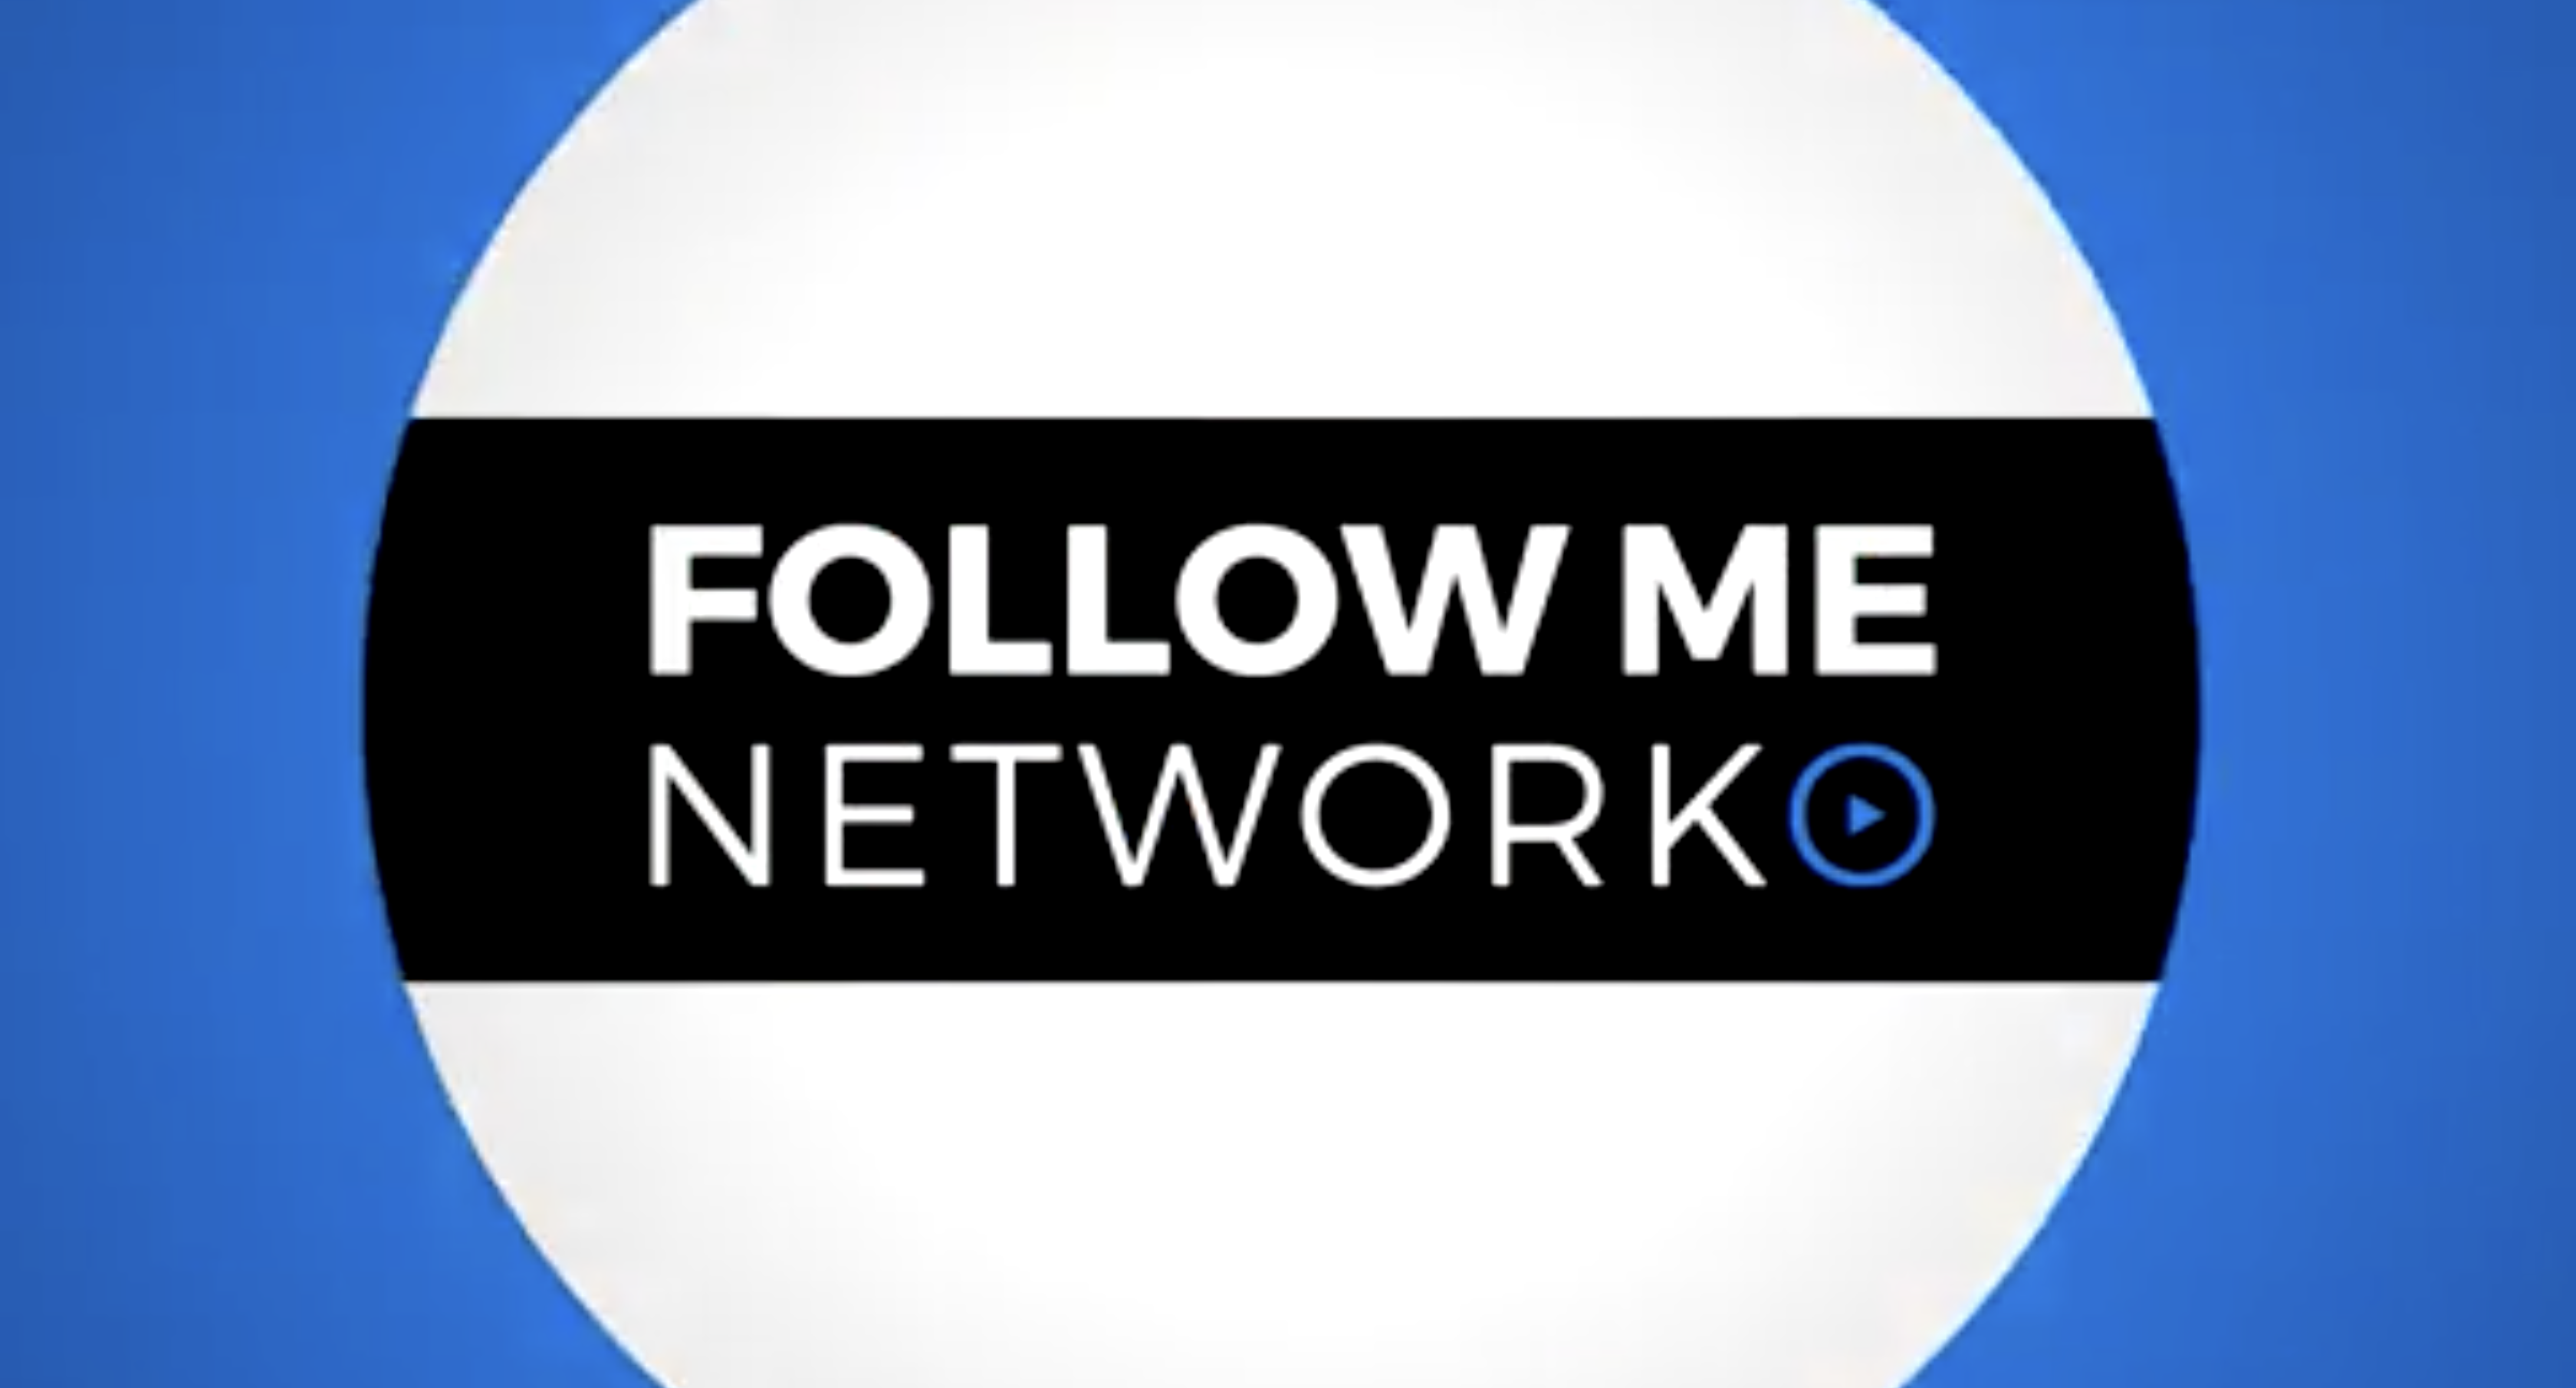 The Follow Me Network